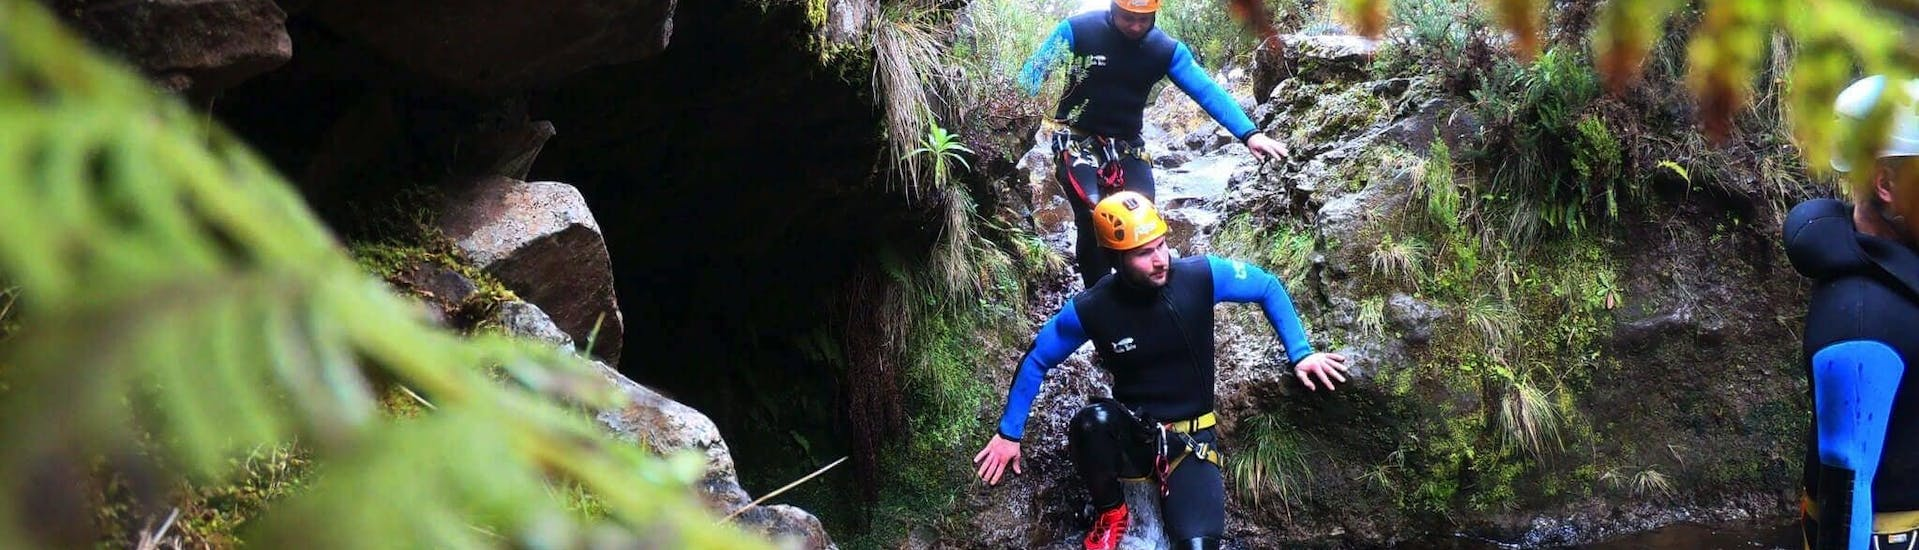 People canyoning in Ribeira das Cales with Adventure Kingdom.